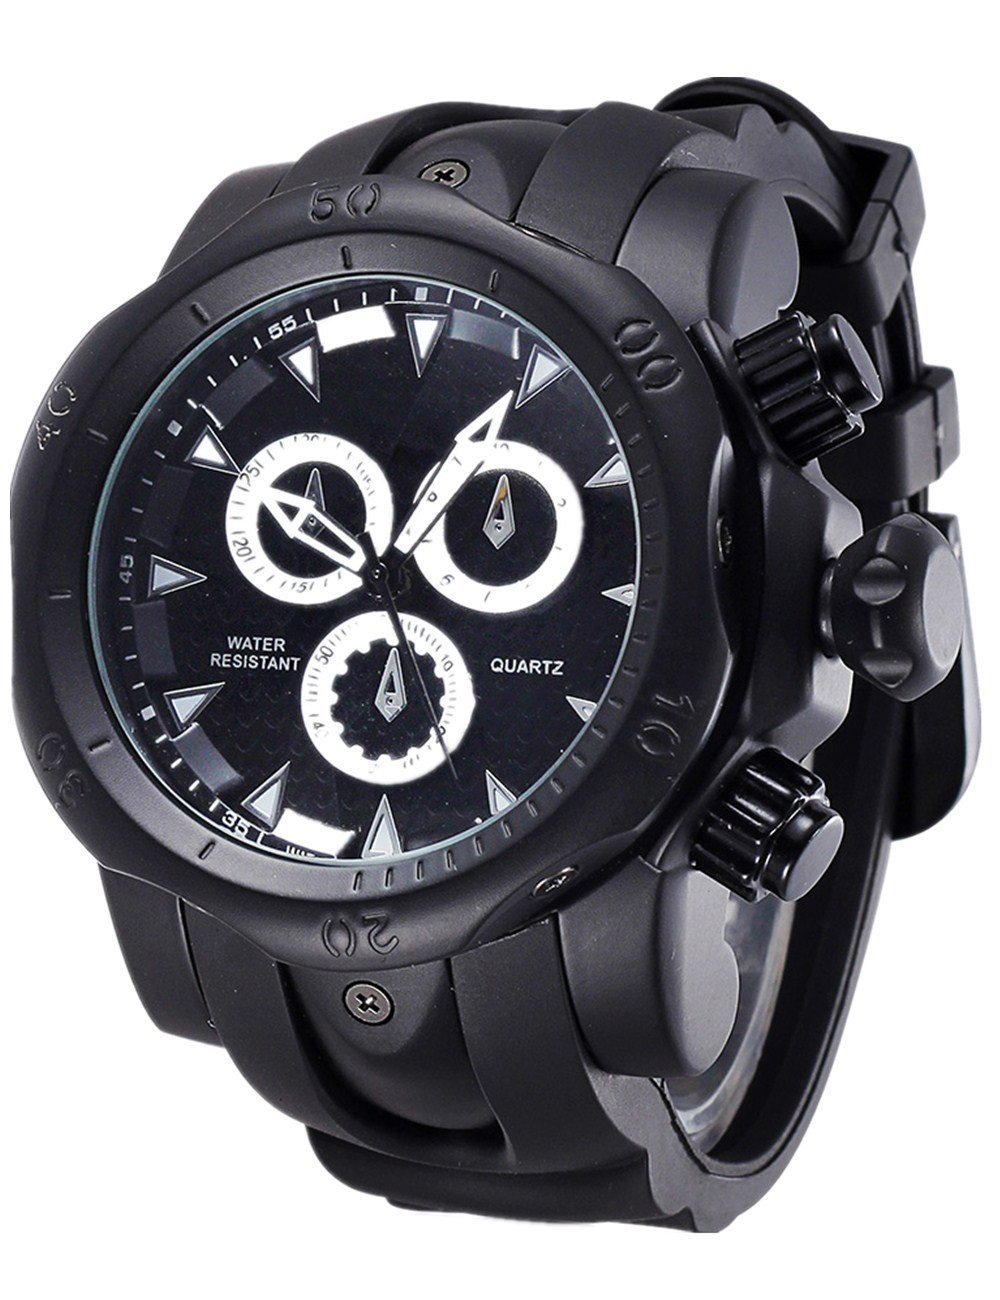 gear got recently like guide rolled quartz out patrol frobisher mechanical start best though the under farer men watches ol good this for with buying has model brand its cool